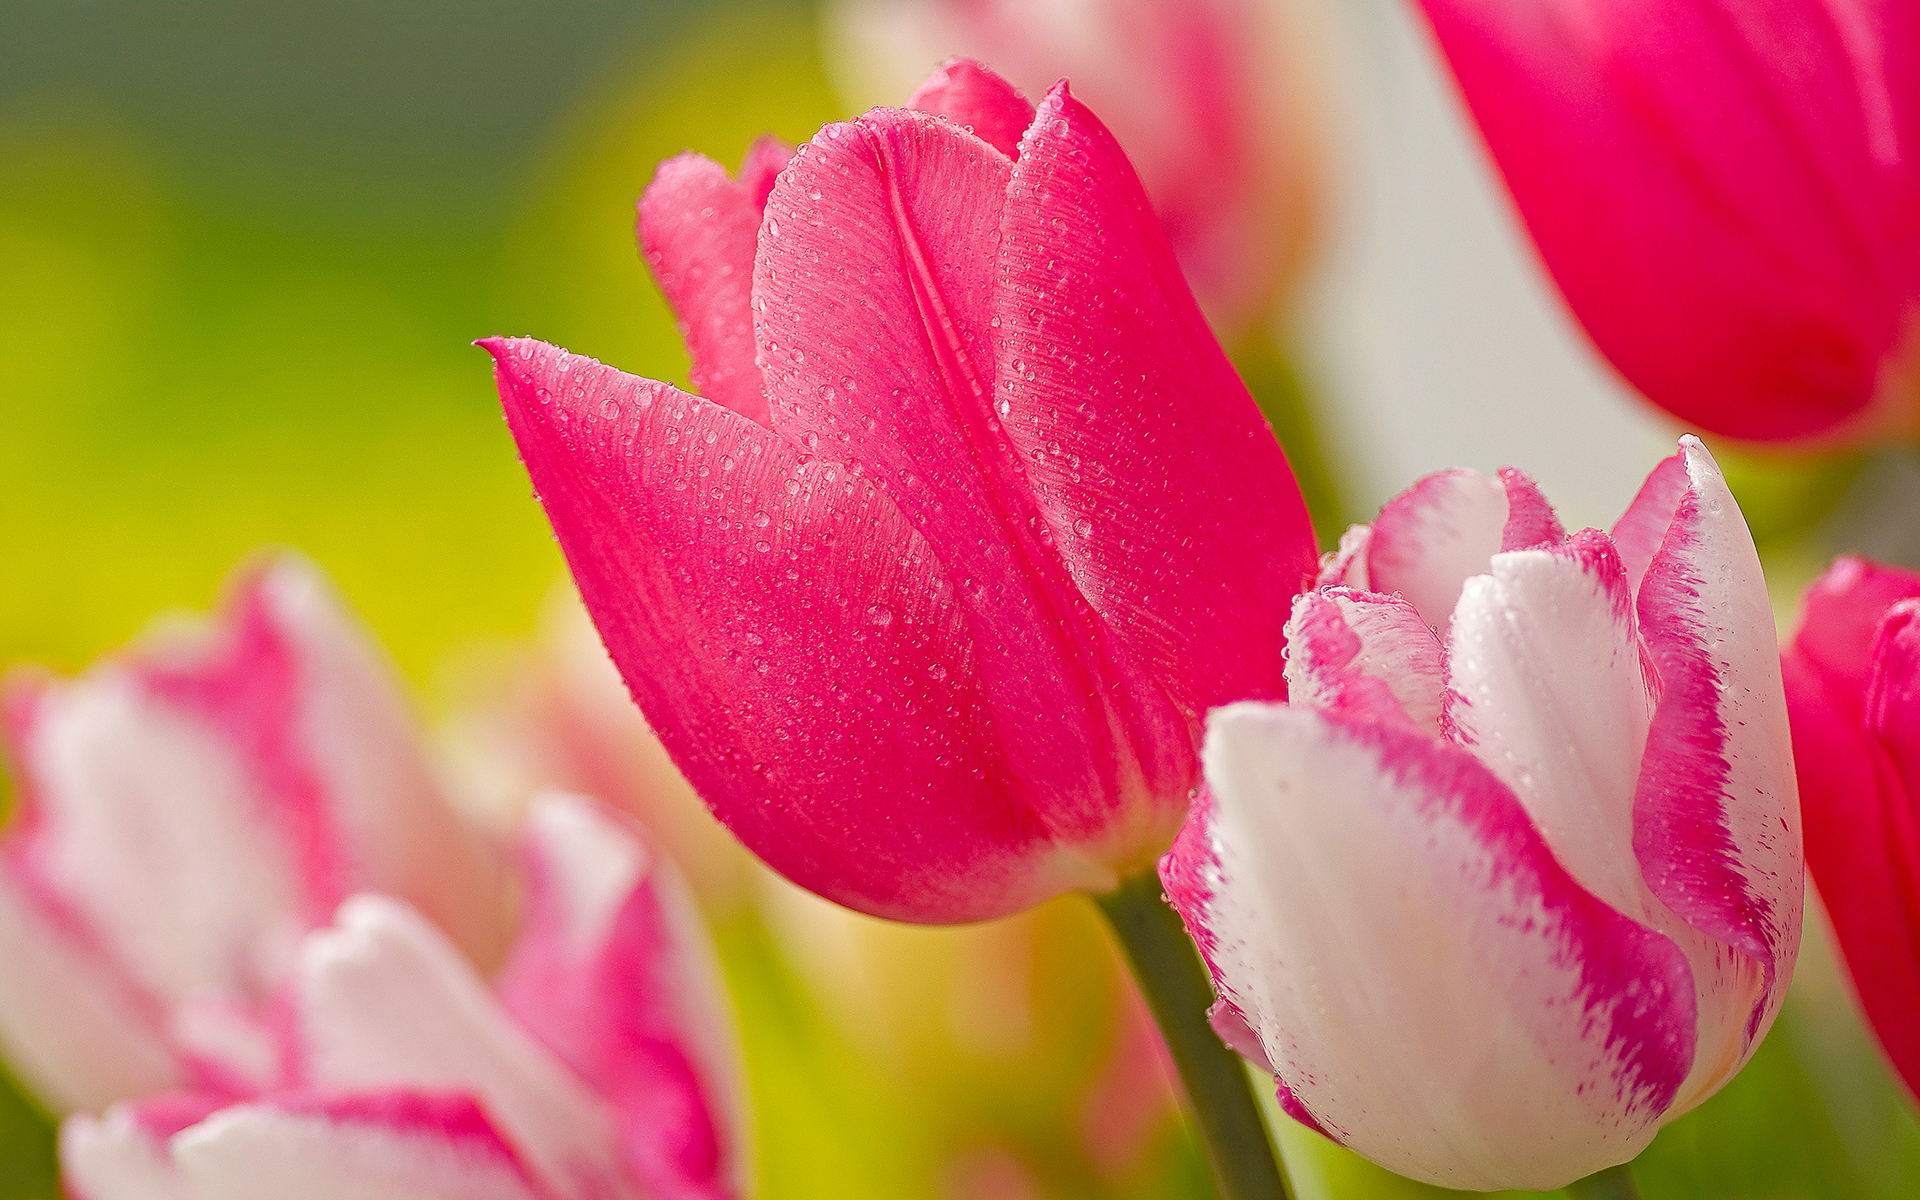 Tulips flower wallpapers pixelstalk pink tulip flowers images and wallpapers thecheapjerseys Choice Image